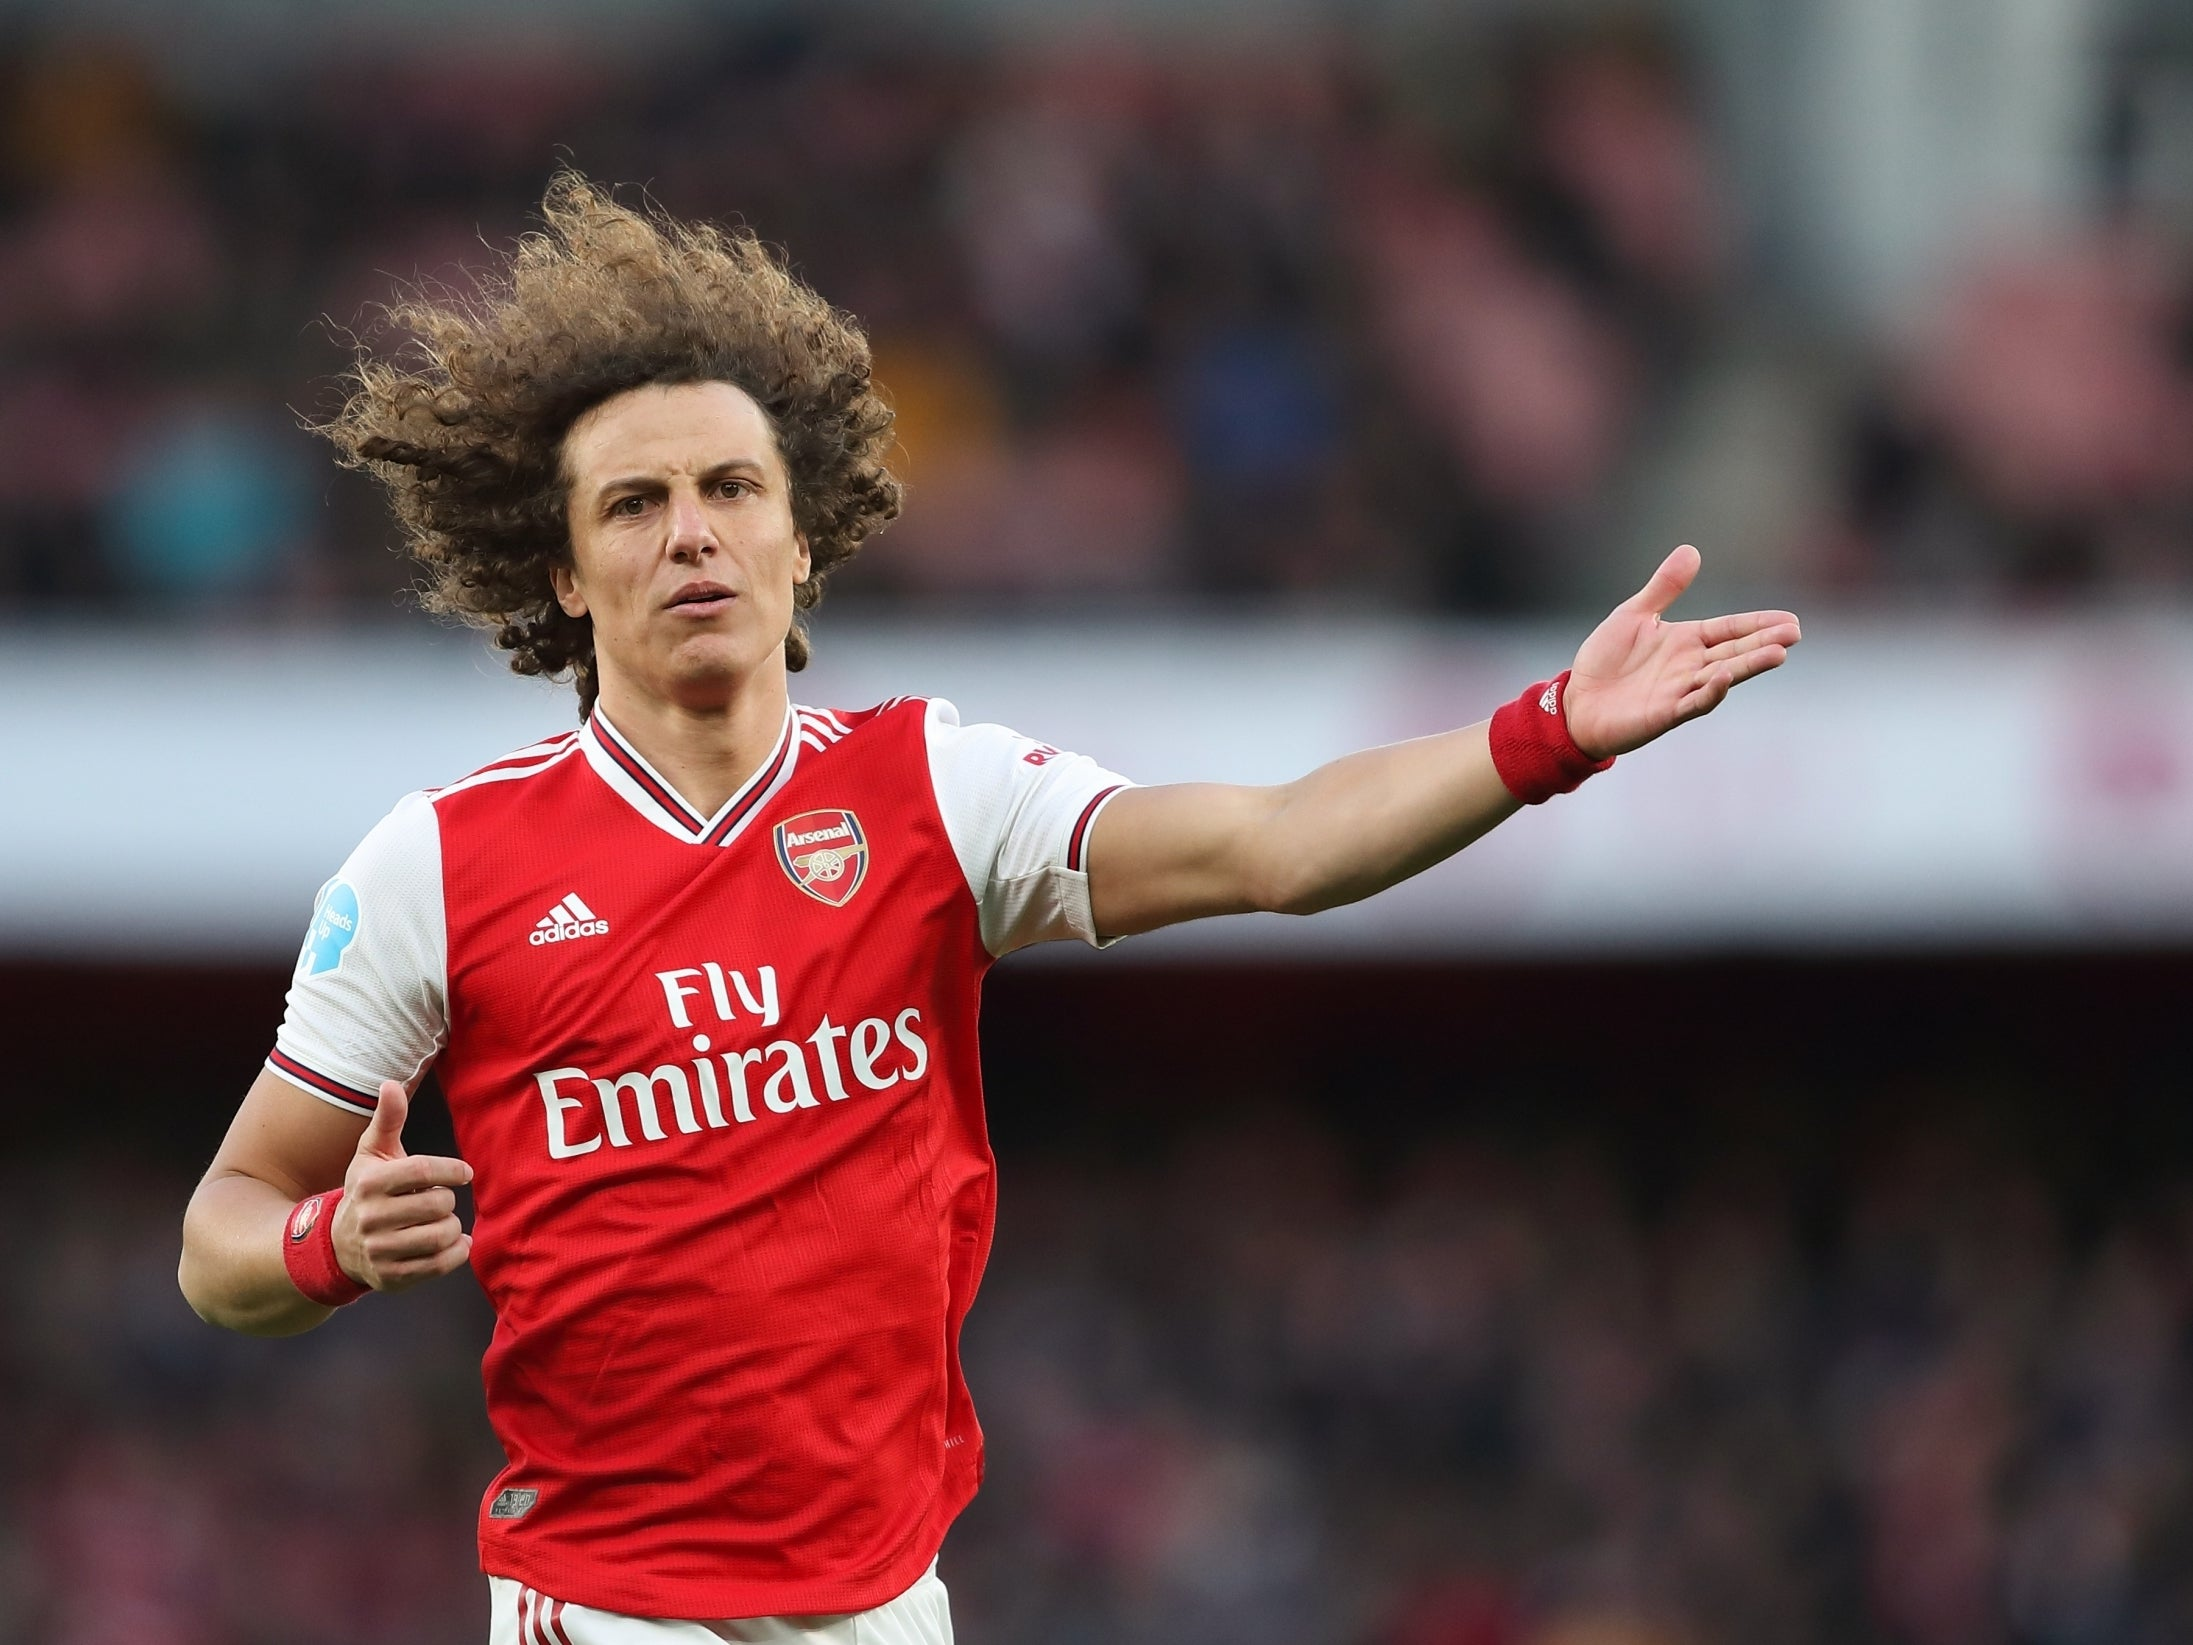 David Luiz 'very happy' at Arsenal and is set to extend contract, says agent Kia Joorabchian